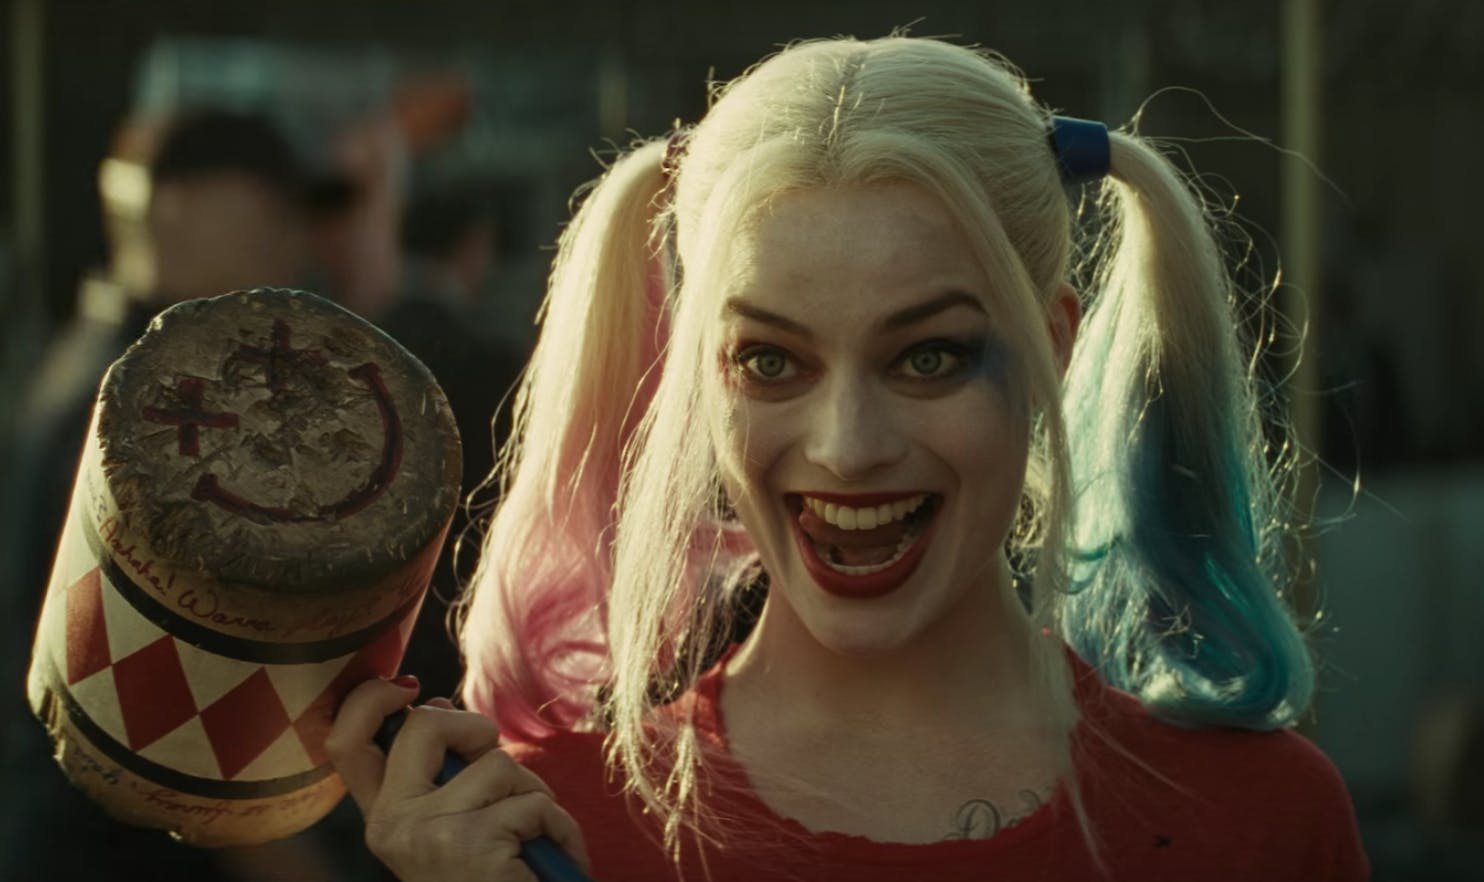 Diy Harley Quinn Halloween Costume Ideas That Will Make You Stand Out From The Crowd